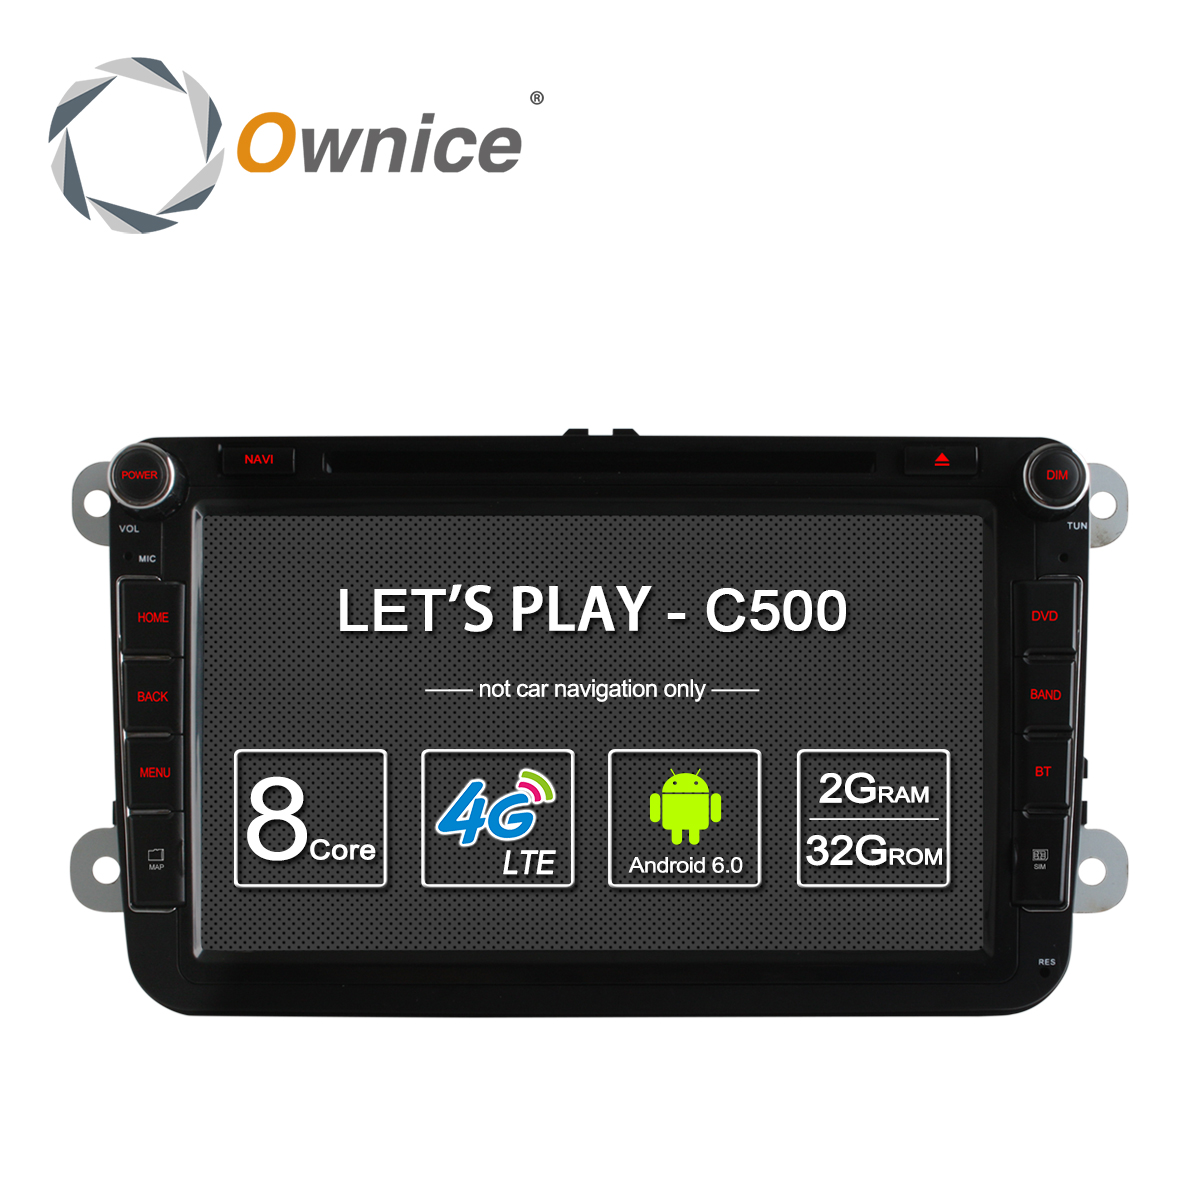 4G SIM LTE Nerwork Ownice C500 Octa 8 Core Android 6.0 2G RAM 2 Din Car DVD GPS Navi Radio Player For VW Skoda Octavia 2 2 din quad core android 4 4 dvd плеер автомобиля для toyota corolla camry rav4 previa vios hilux прадо terios gps navi радио mp3 wi fi